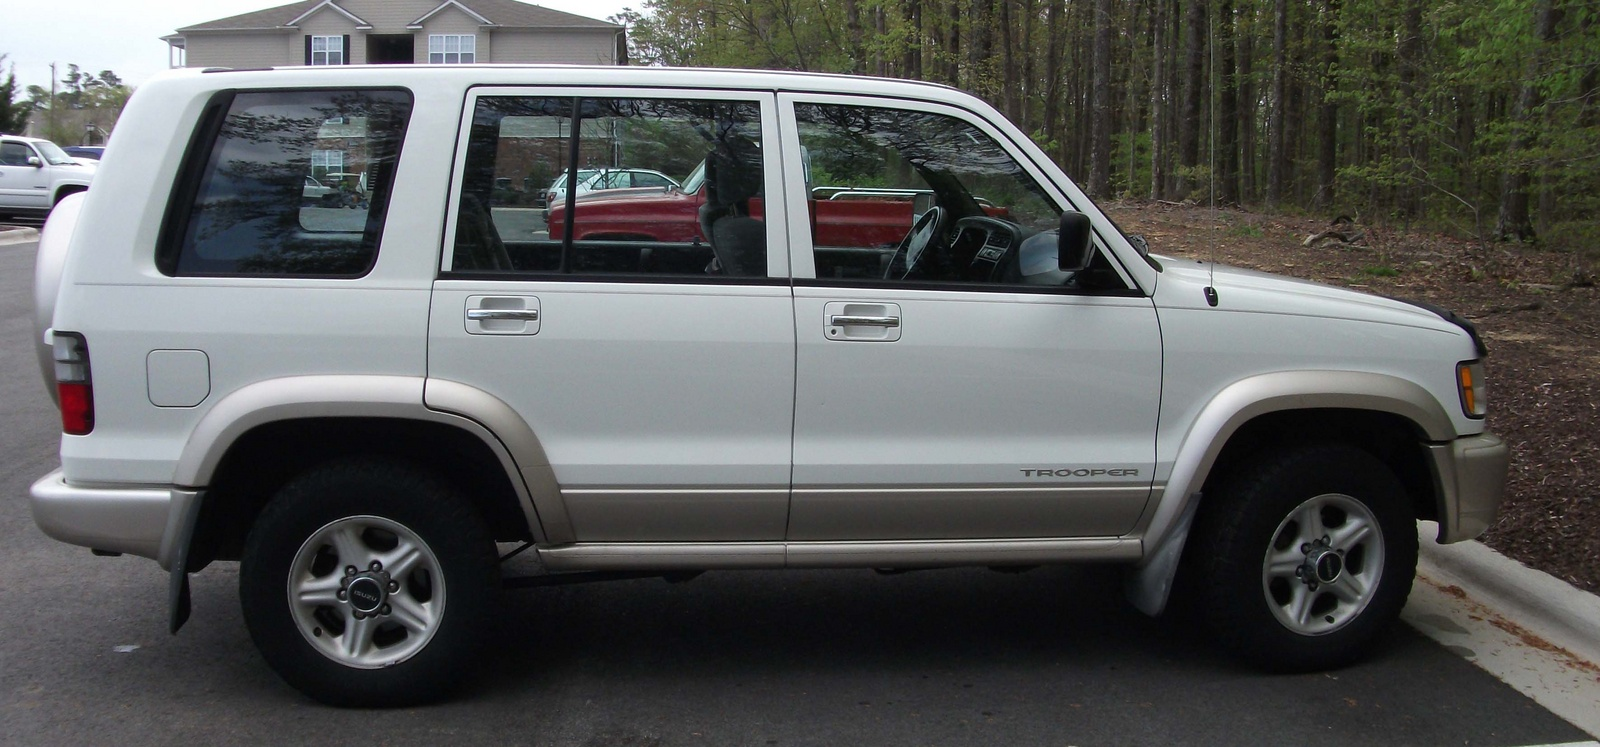 2001 Isuzu Trooper #8